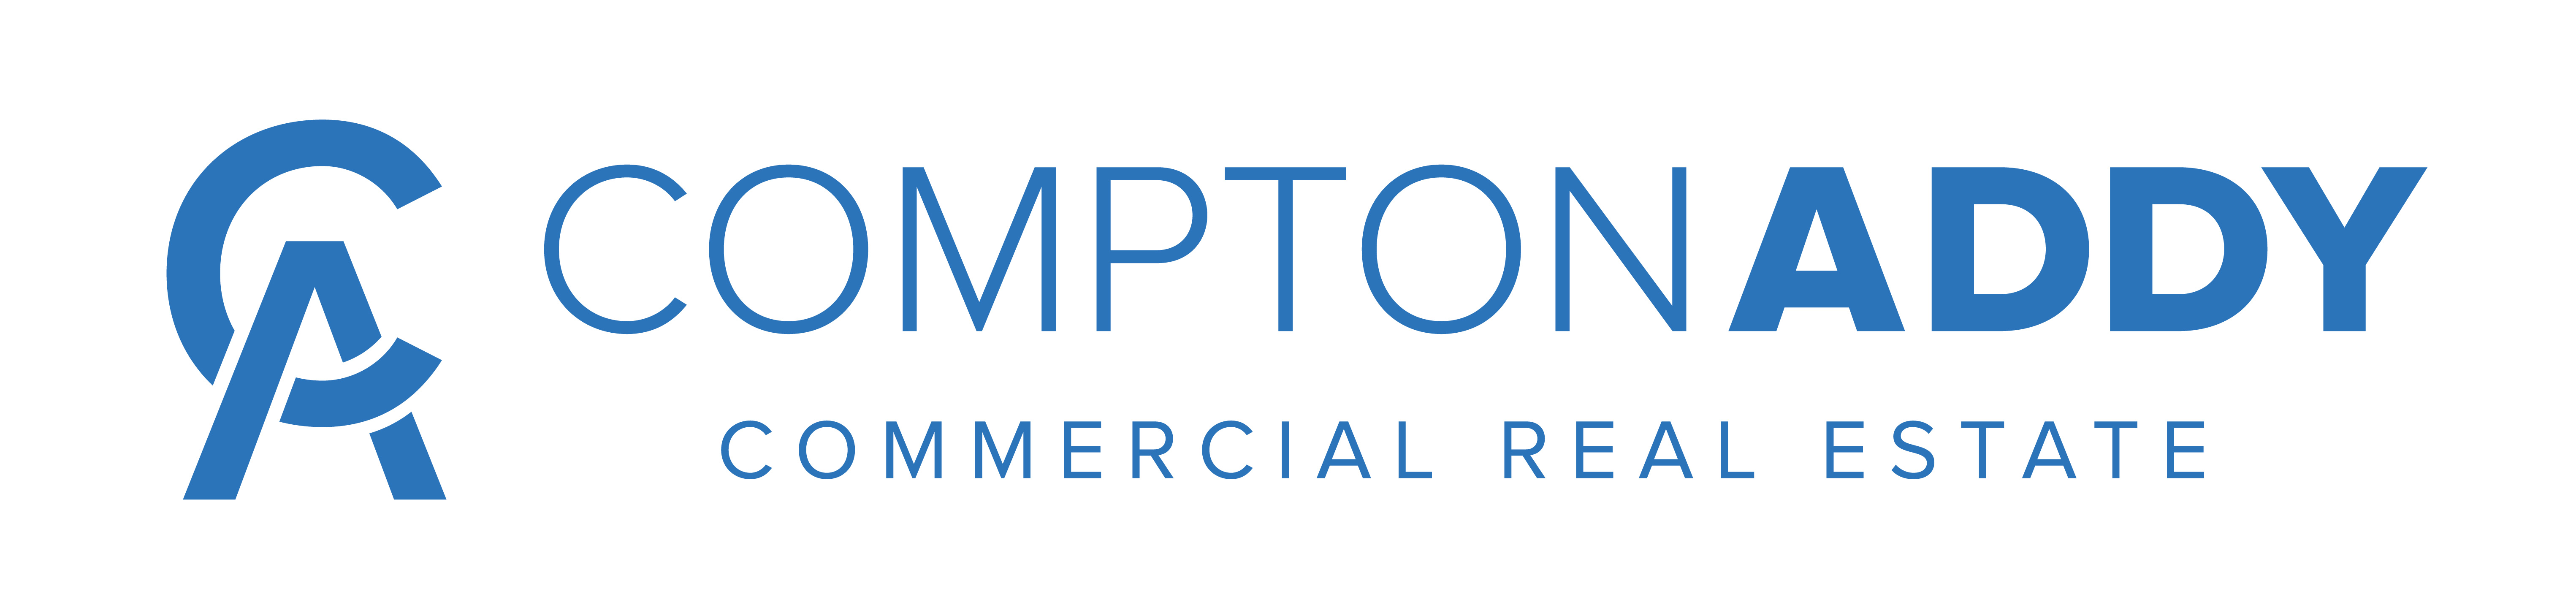 ComptonAddy Commercial Real Estate to Use SiteSeer